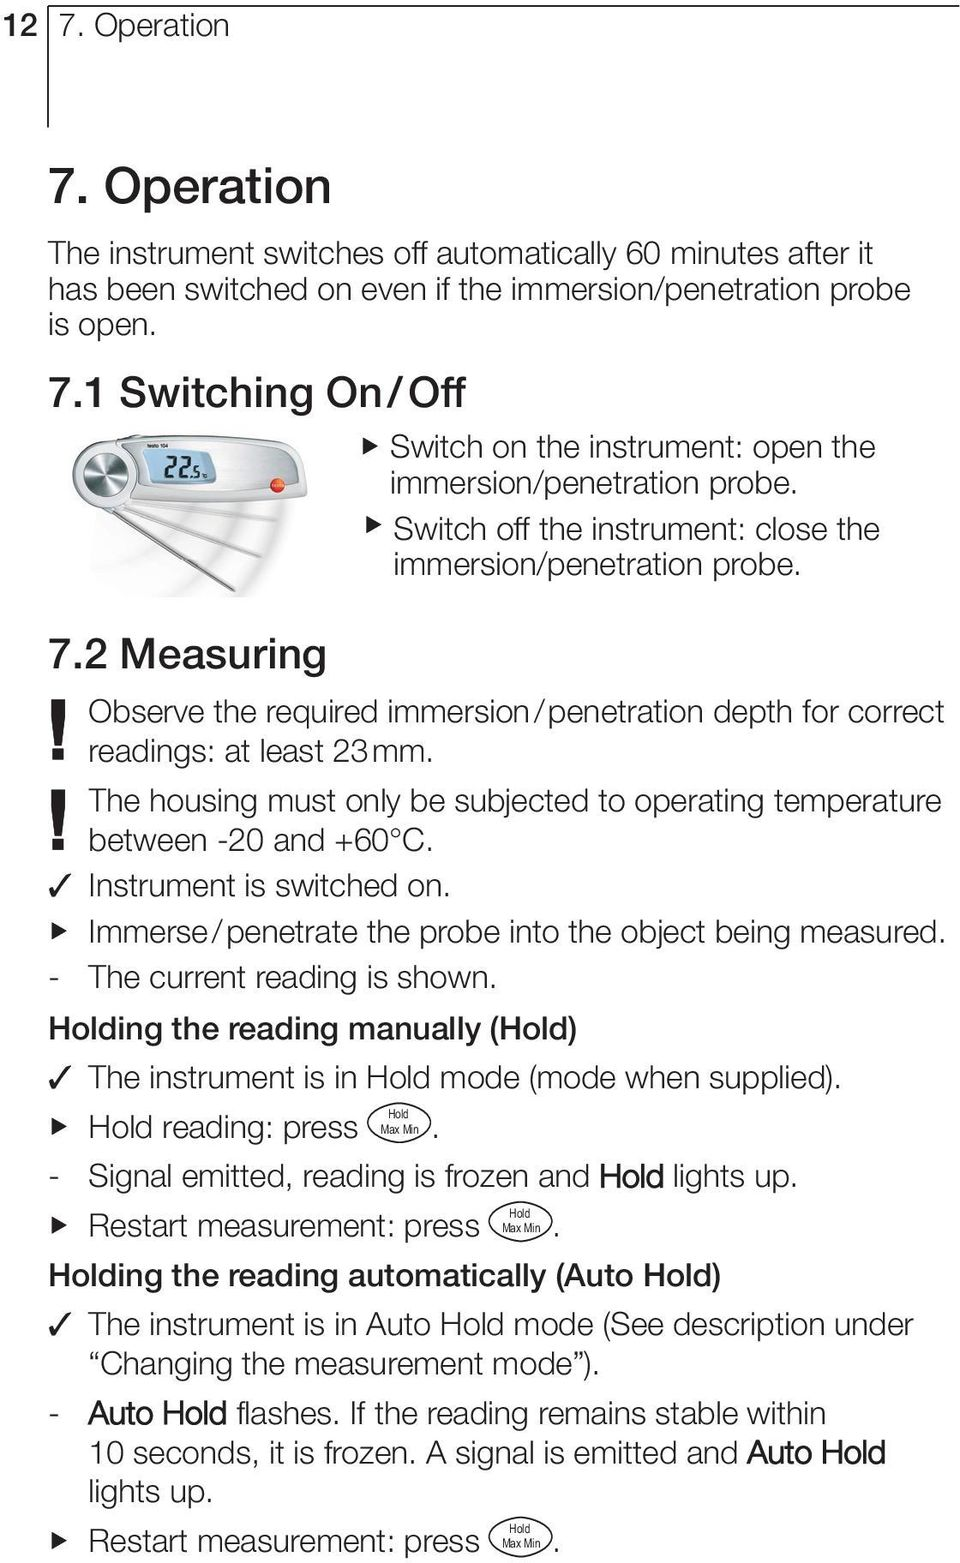 Observe the required immersion/ penetration depth for correct readings: at least 23mm. The housing must only be subjected to operating temperature between -20 and +60 C. Instrument is switched on.